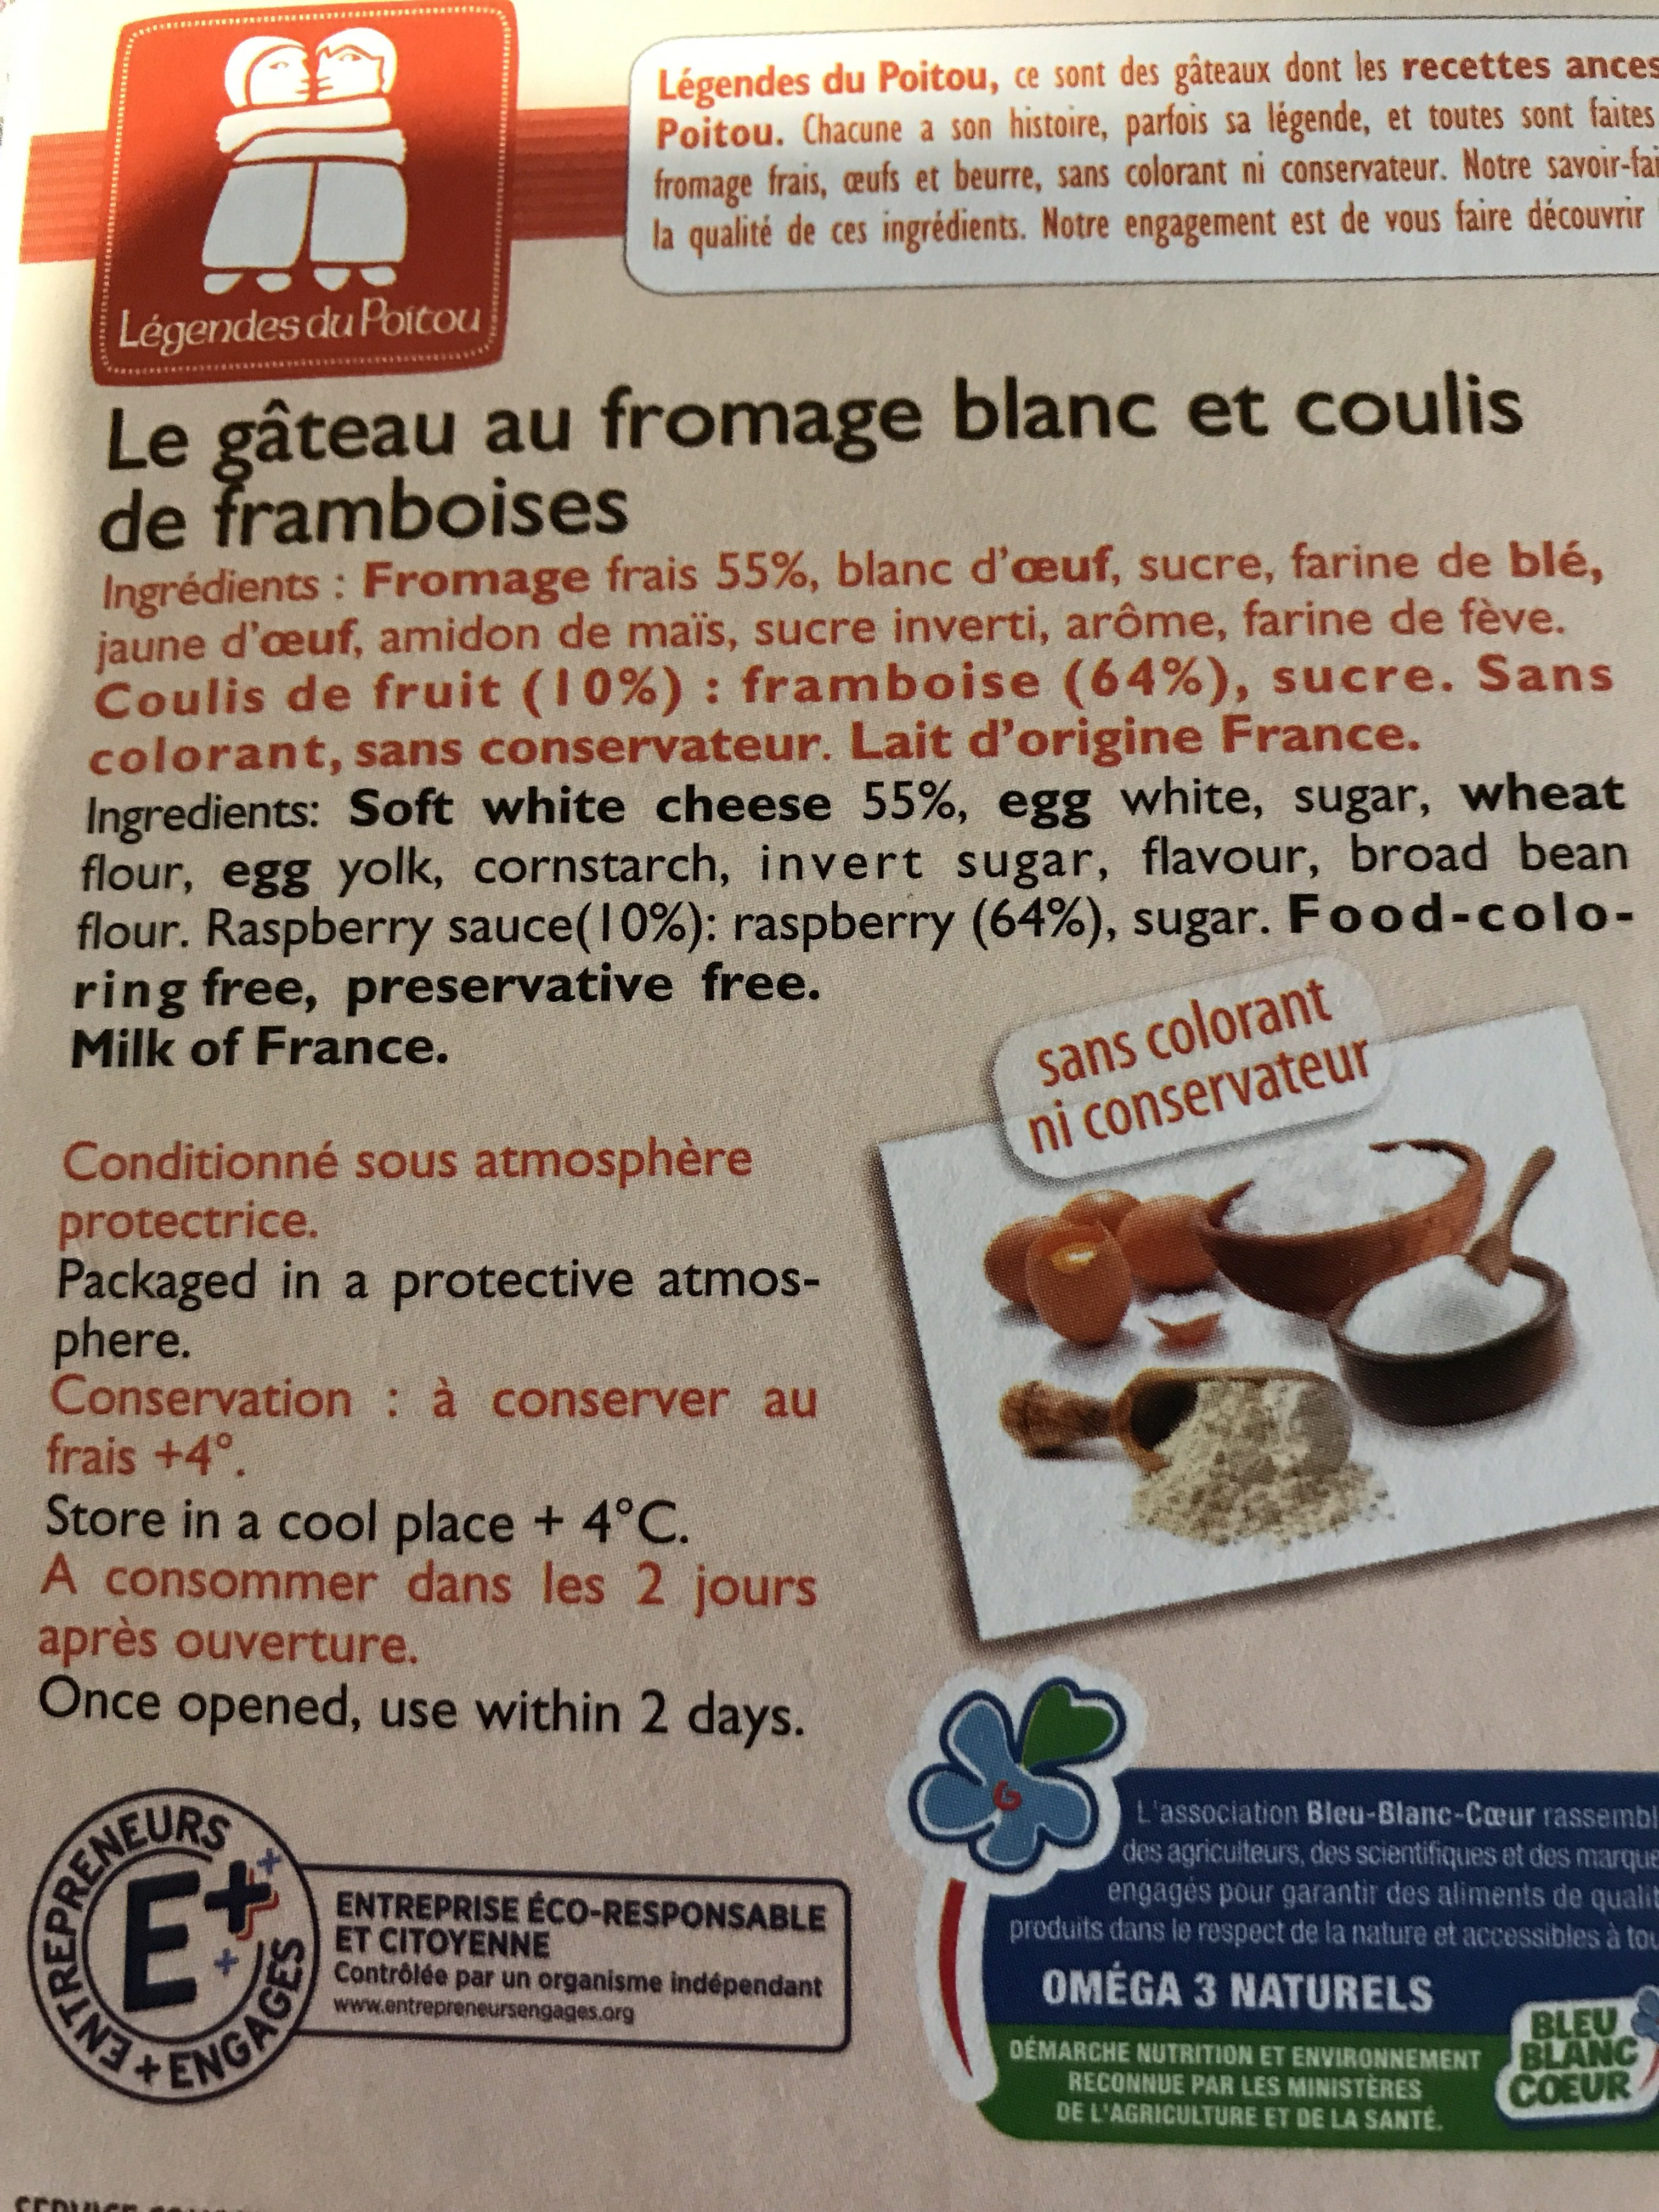 Gateau au fromage blanc - Ingredients